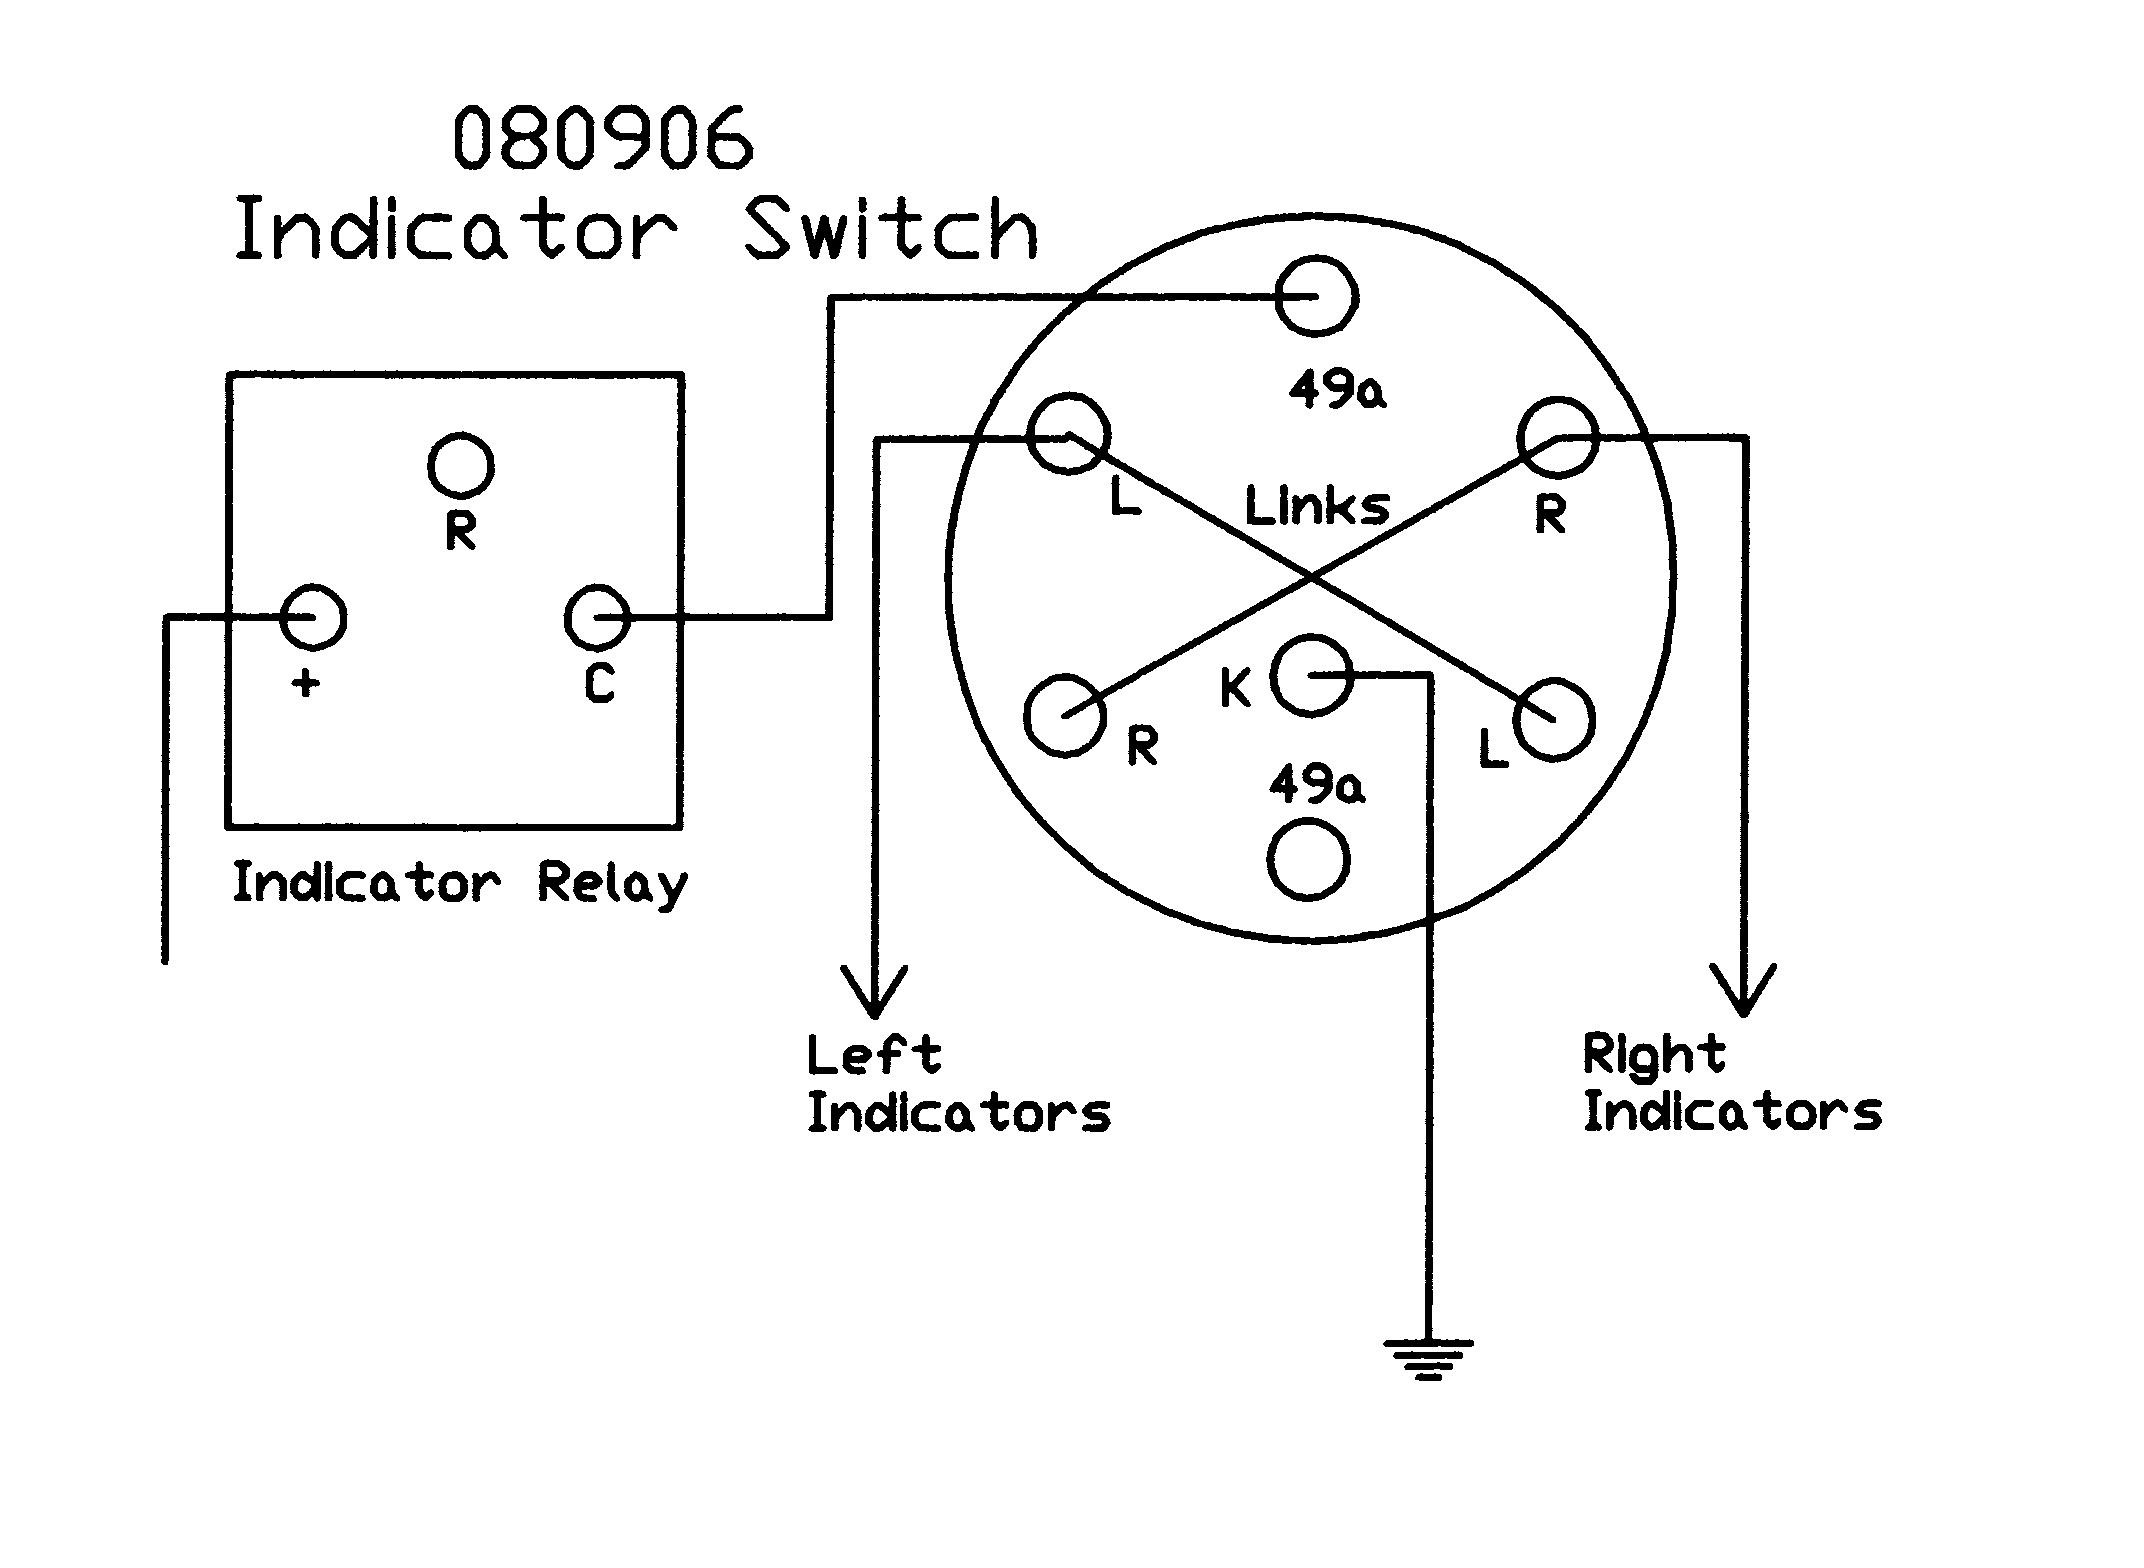 080906_wiring_diagram rotary switch black plastic lever and integral red warning lamp rotary isolator switch wiring diagram at bayanpartner.co